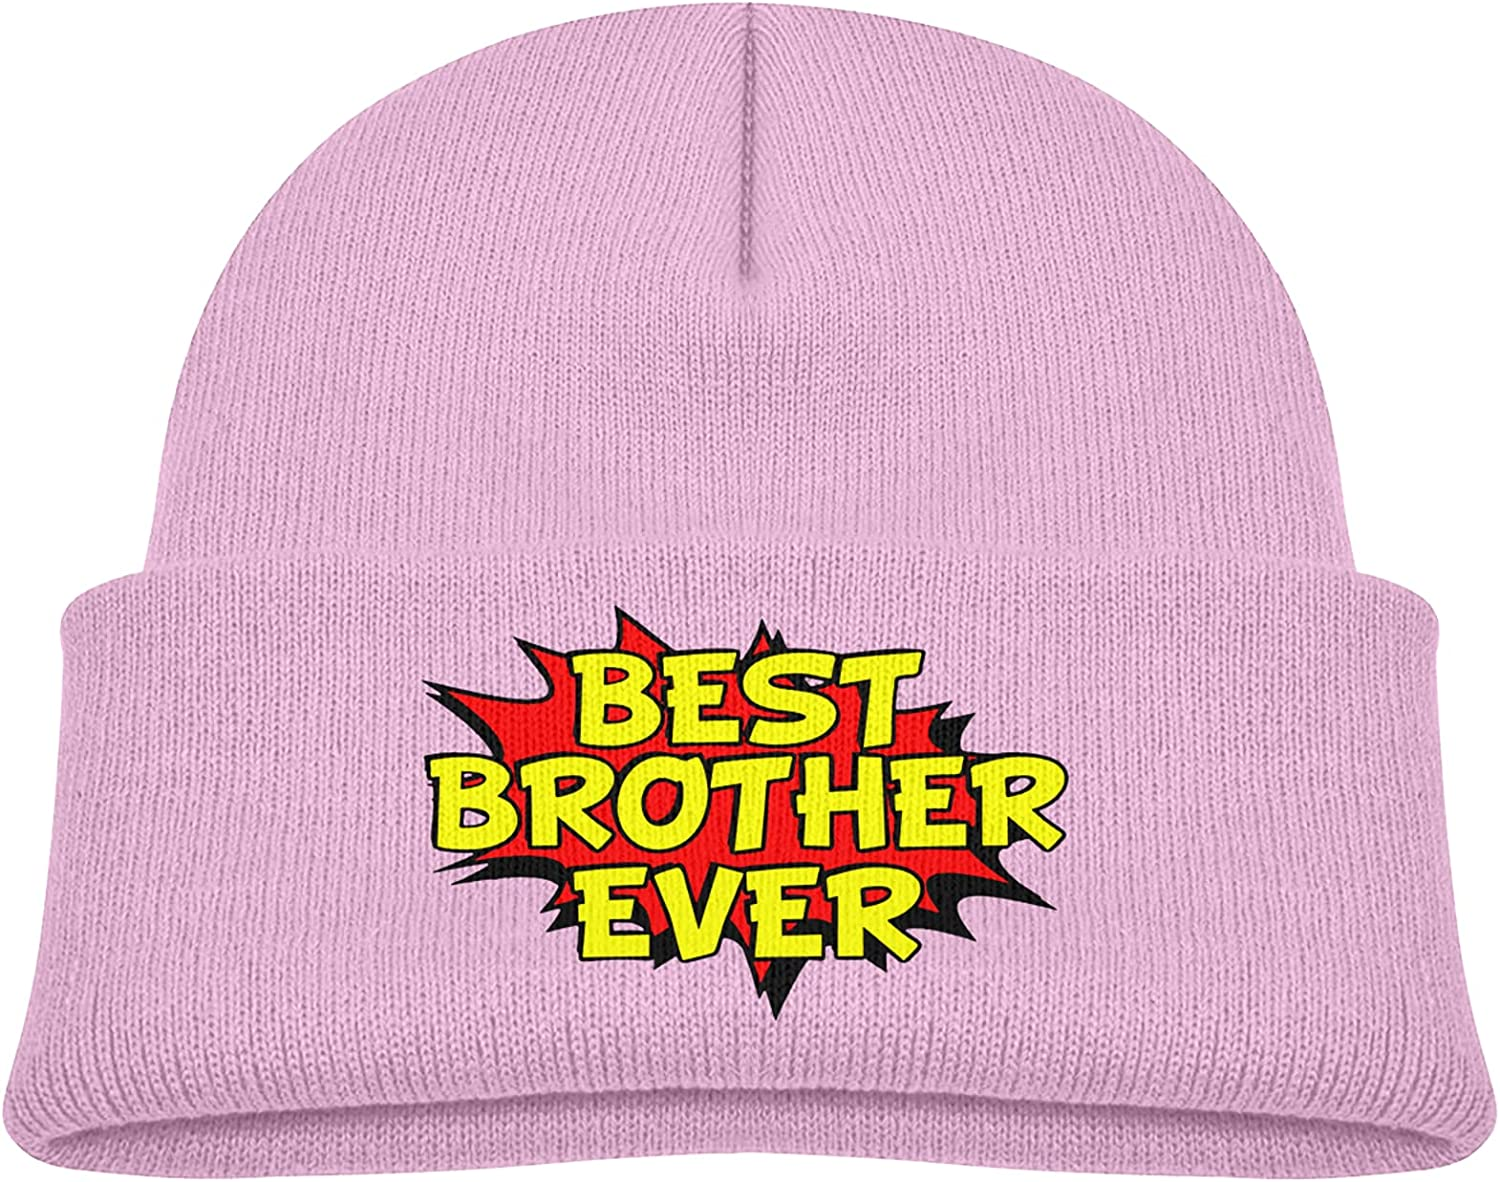 Best Popularity Brother Ever Trendy Skull Beanie Winter Hats Hat Knit Clearance SALE! Limited time!